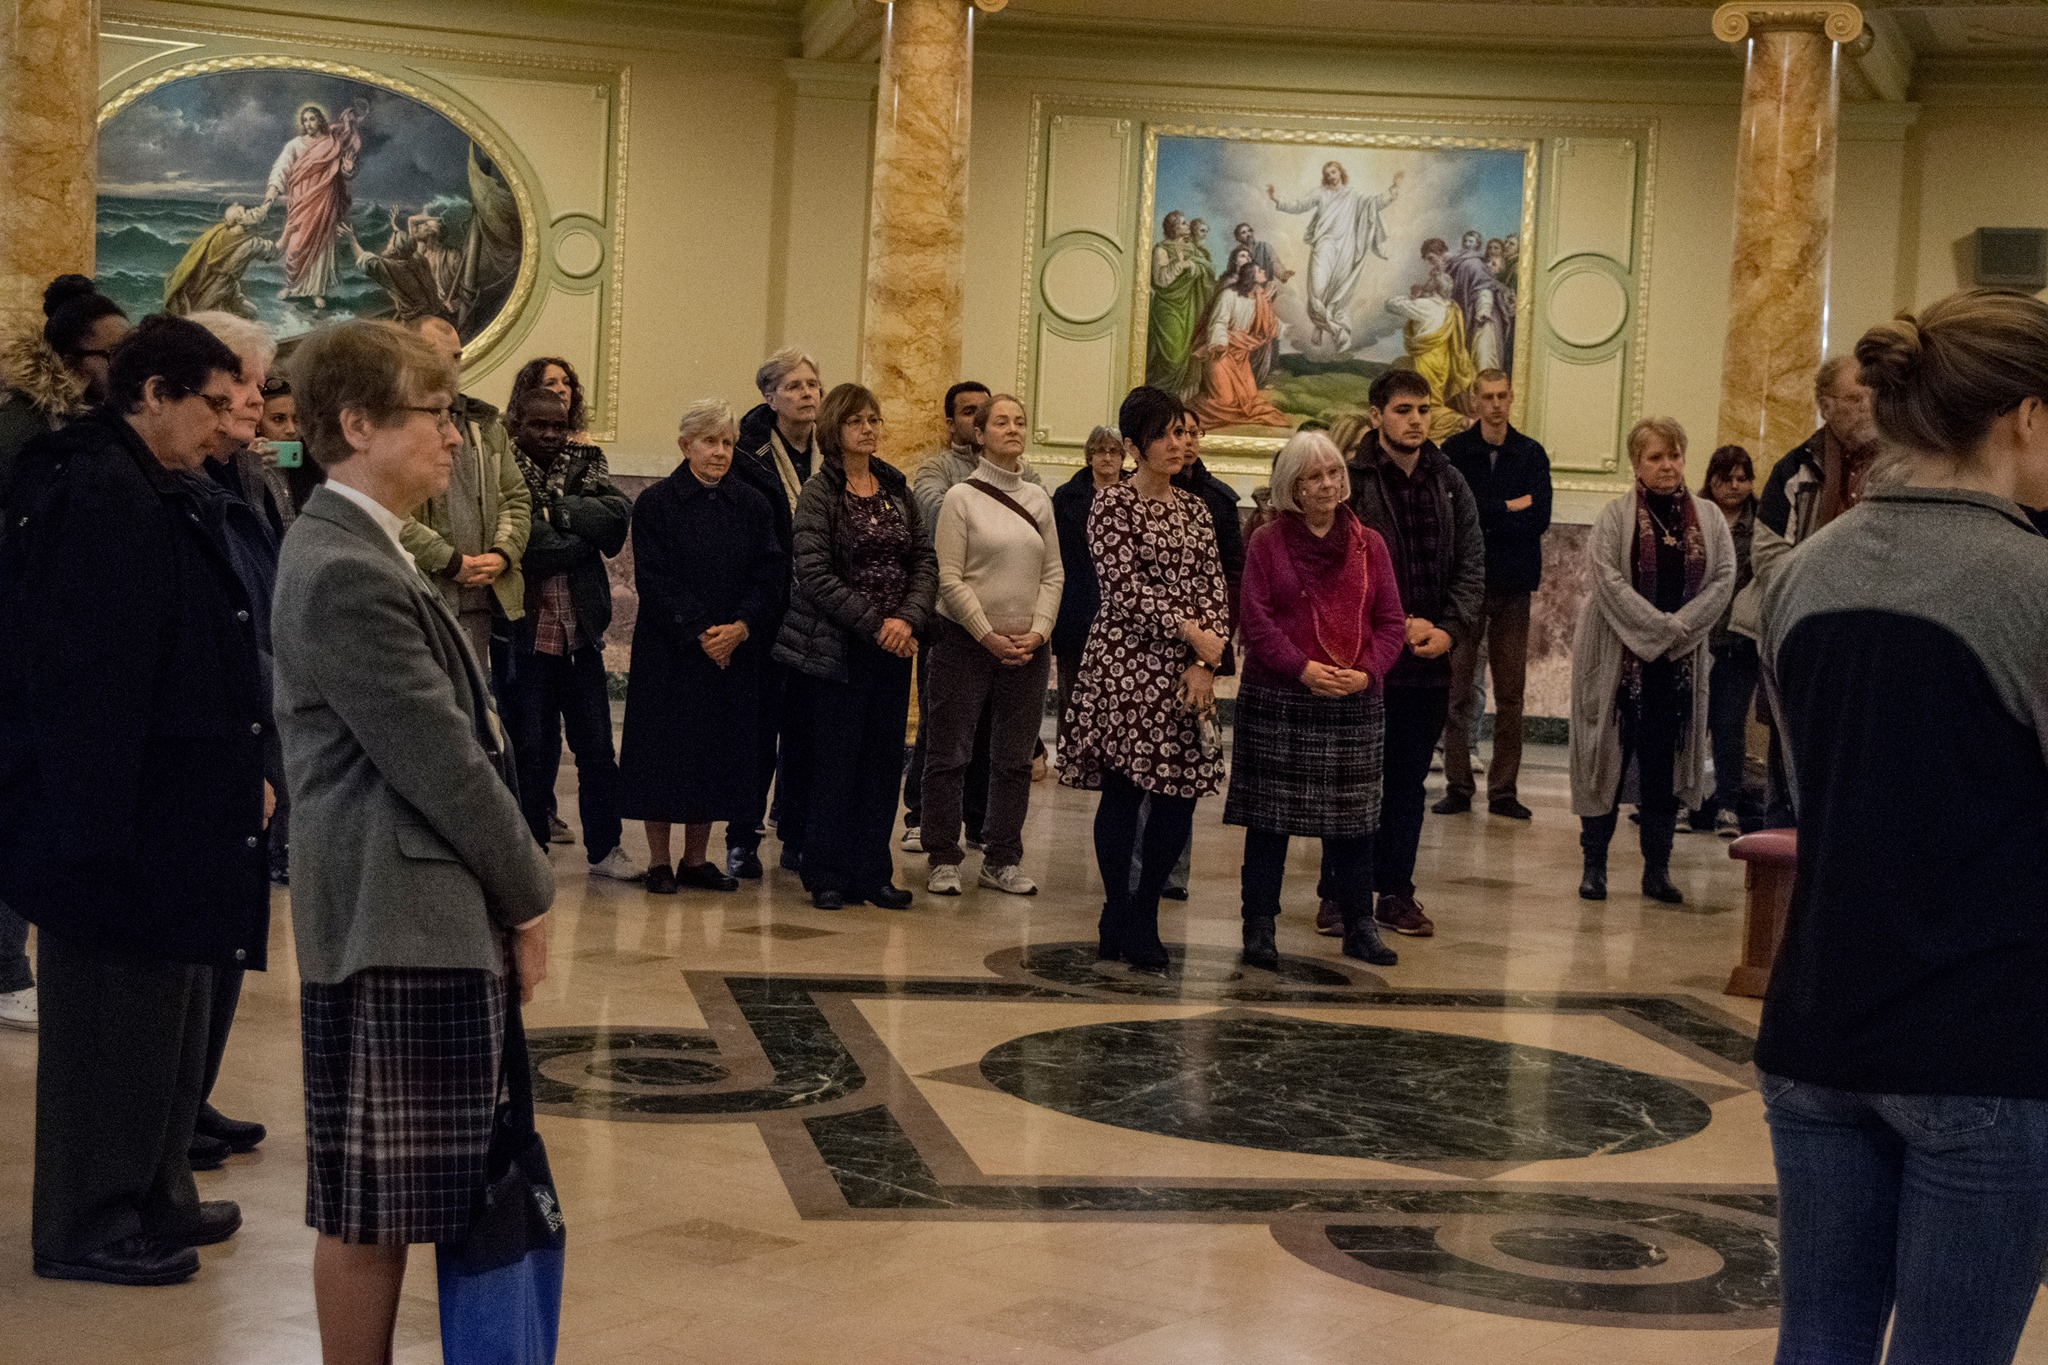 Members of the Marywood Community gathered in the Rotunda for a prayer service and reflection circle.